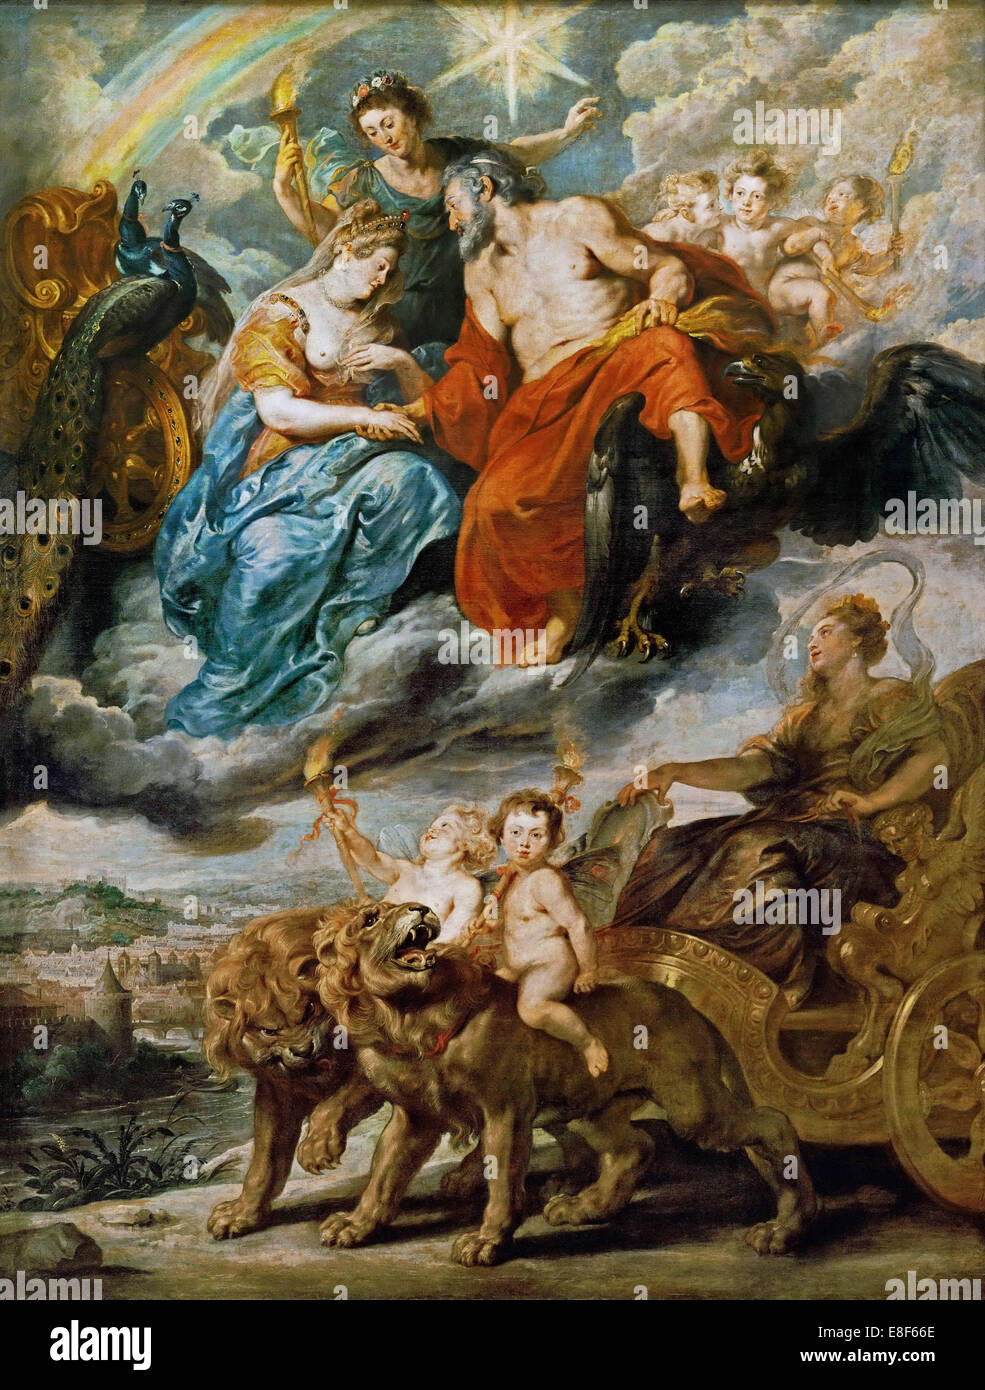 The Meeting of Marie de' Medici and Henry IV at Lyons (The Marie de' Medici Cycle). Artist: Rubens, Pieter - Stock Image